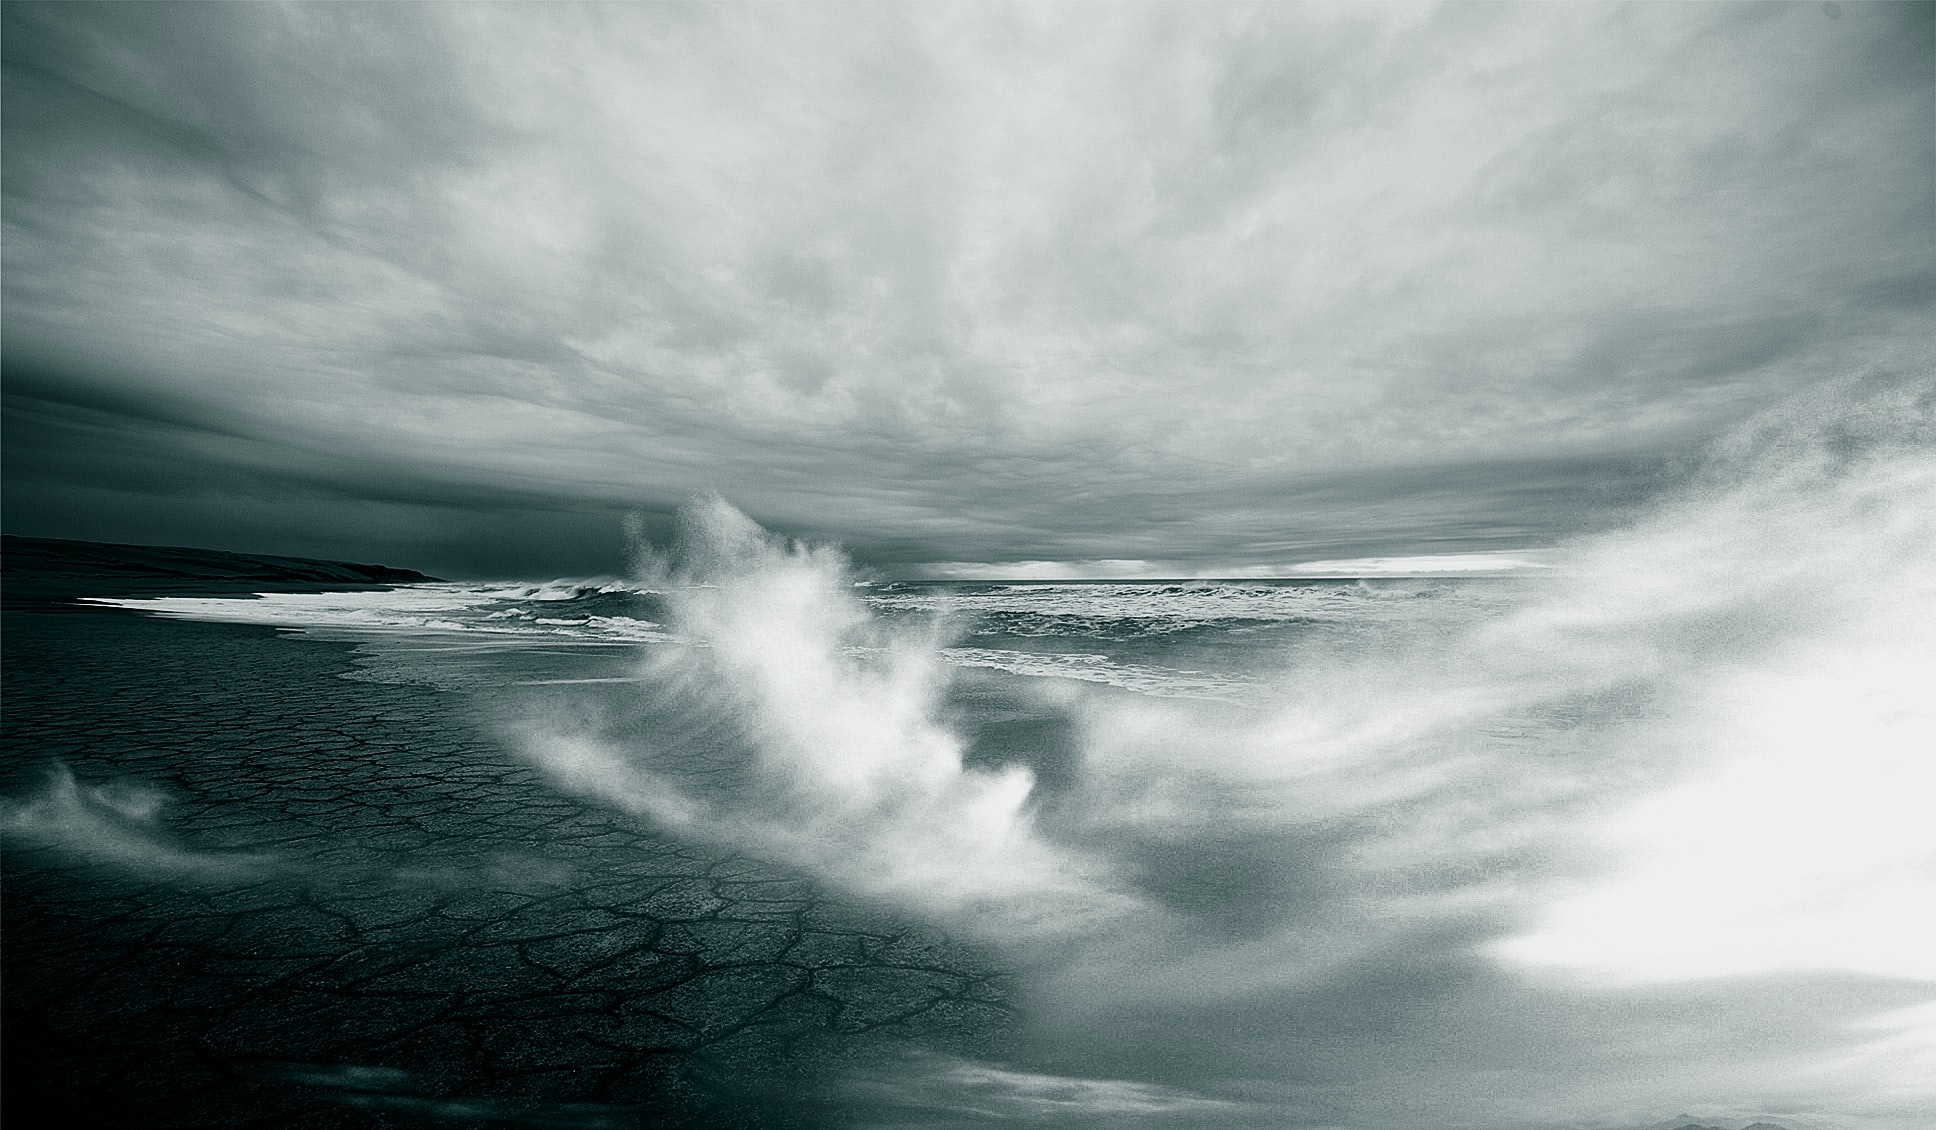 White-capped sea waves breaking on a barren shore on a stormy day